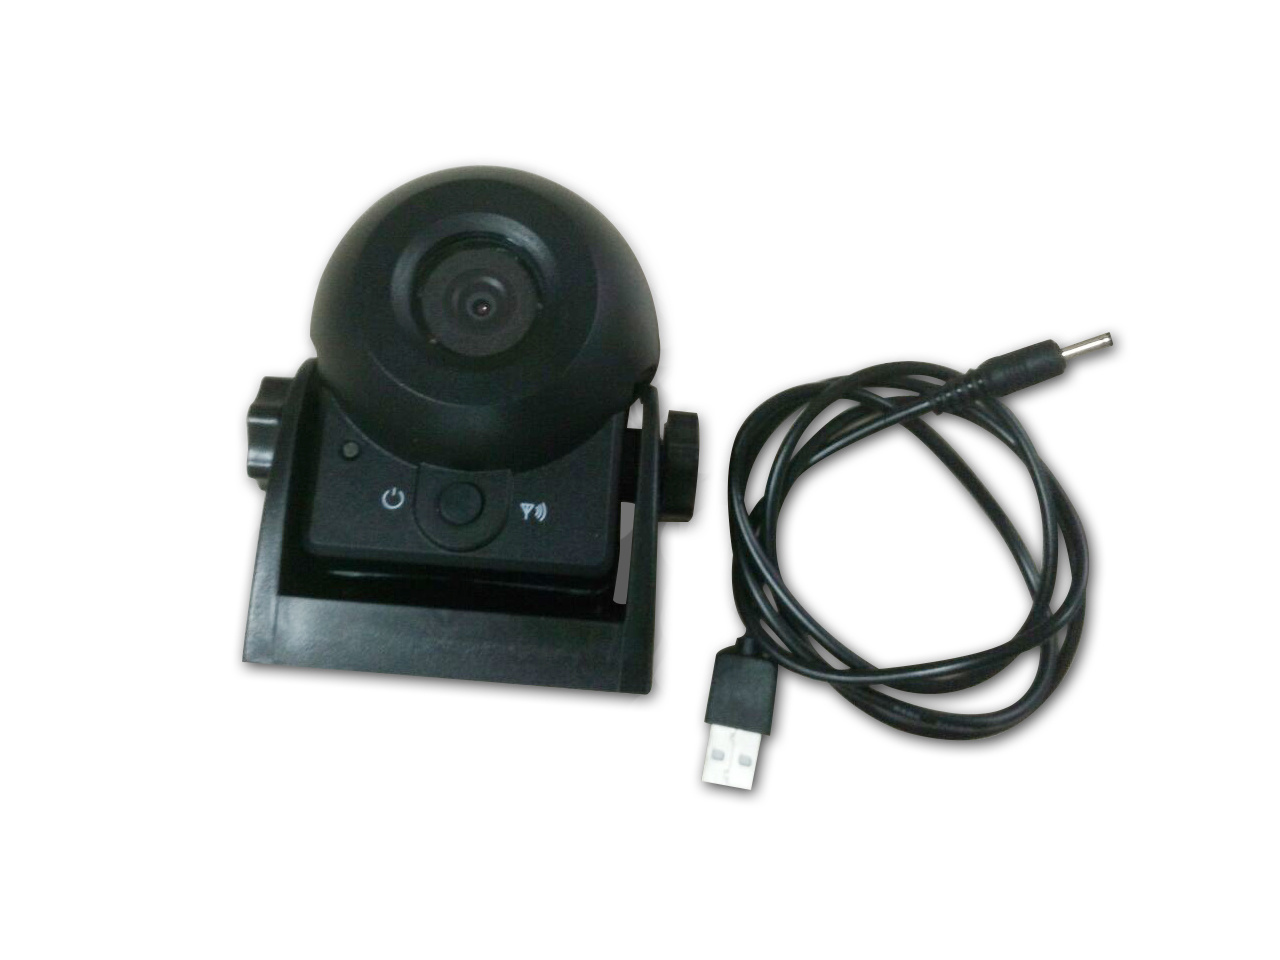 New Car WiFi Camera for Front and Rear View Connect with Phone Good Night Vision